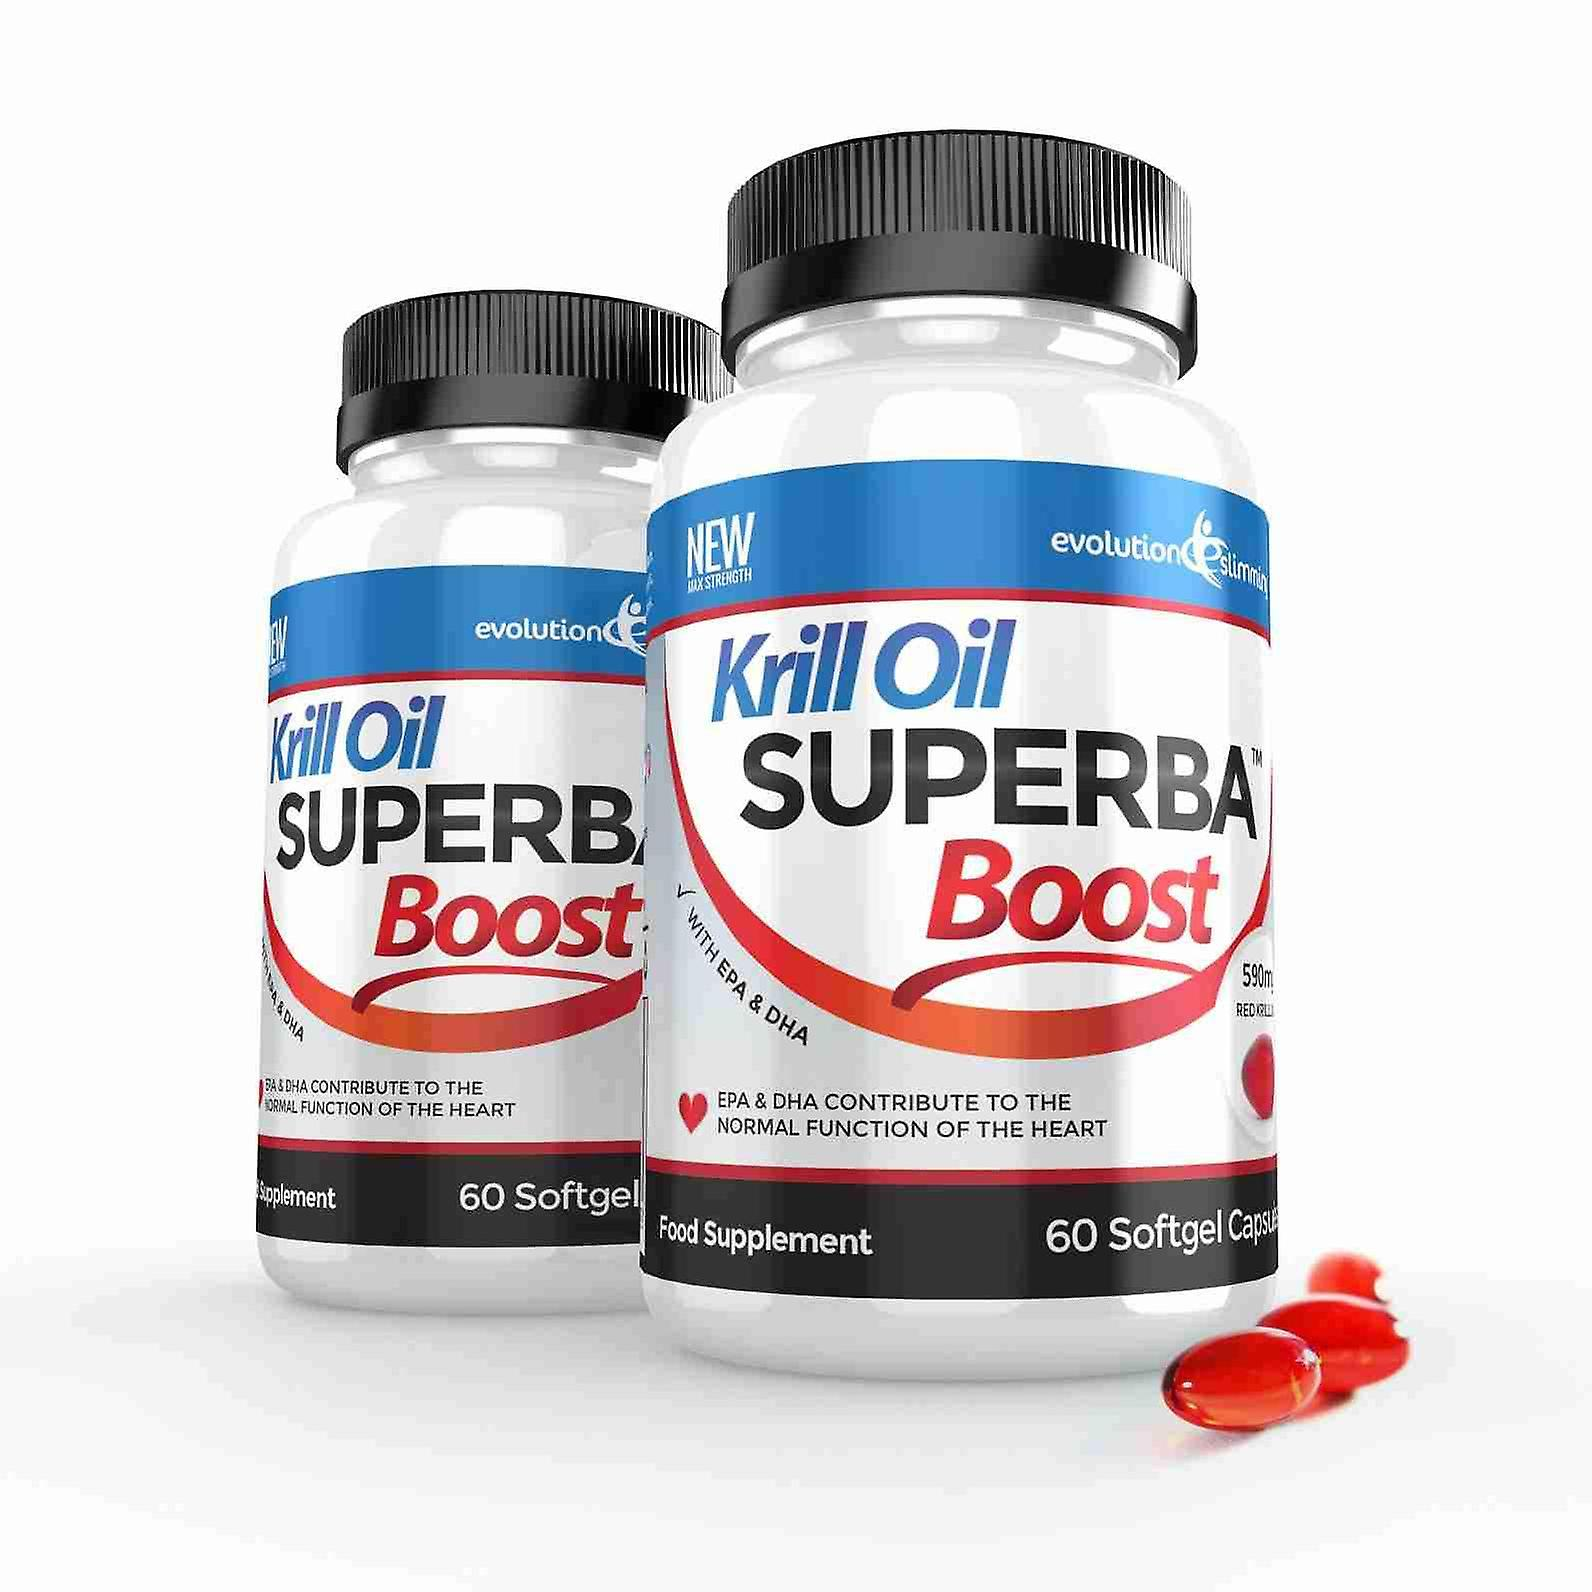 Krill Oil Superba™ Boost 590mg Krill Oil Softgels - 120 Capsules - Brain, Heart and Joint Health - Evolution Slimming